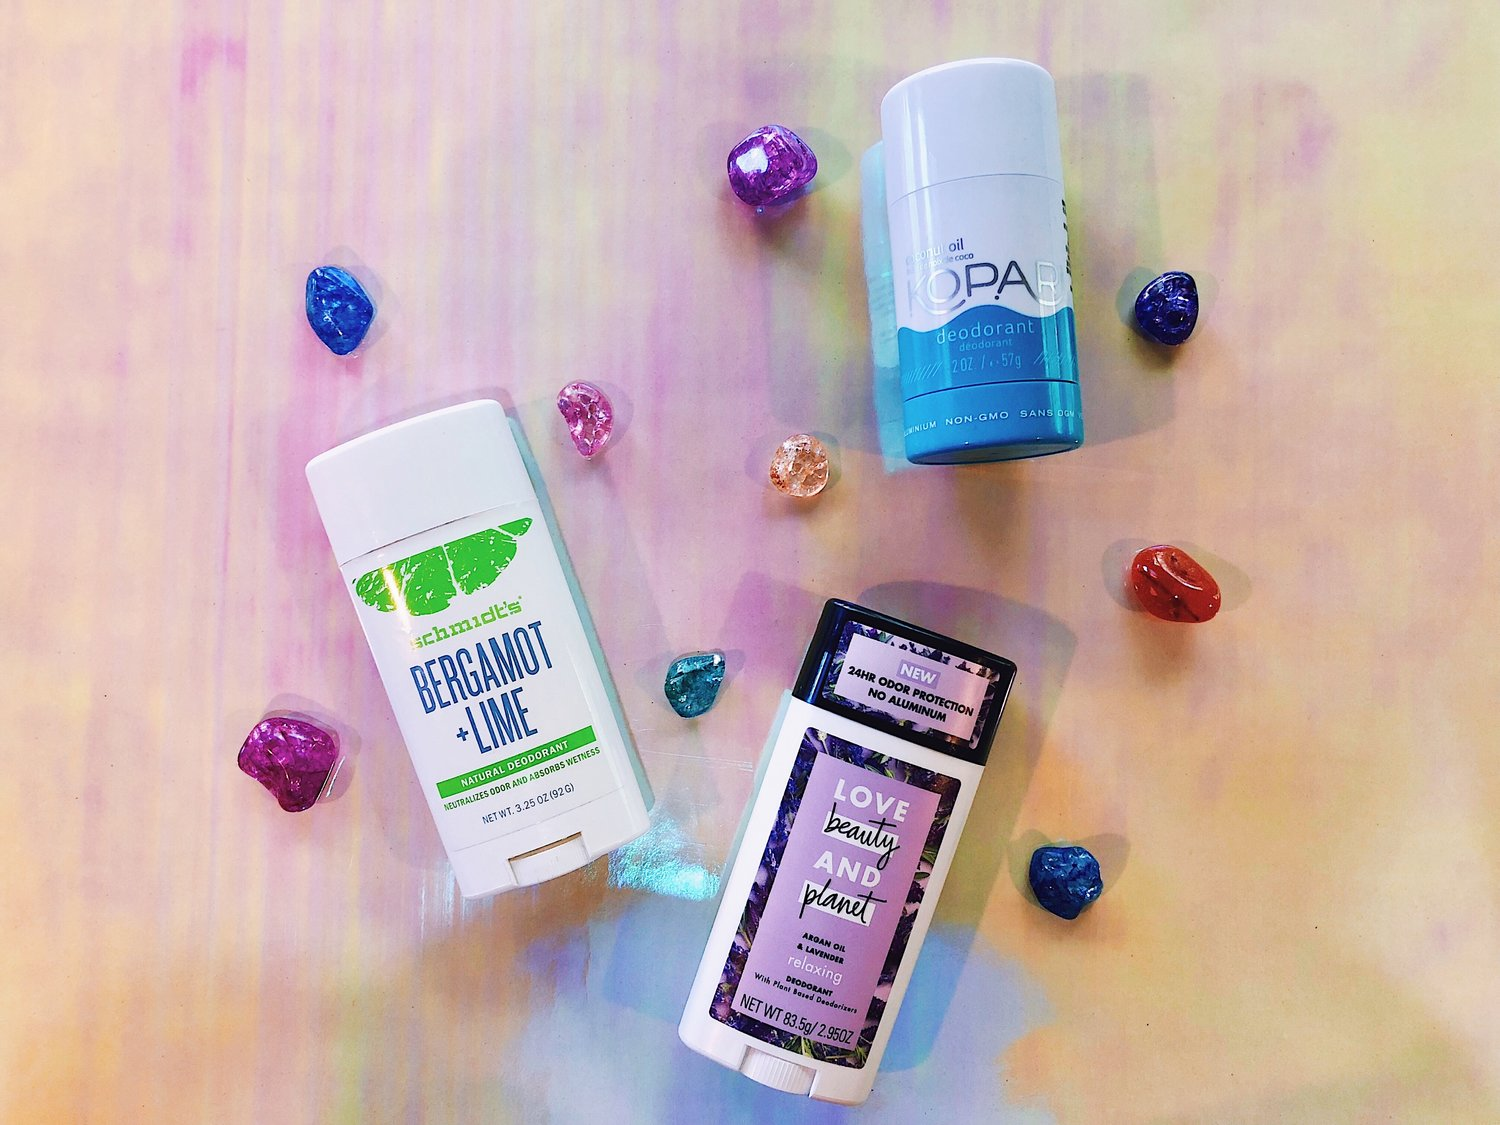 Switch, Switch: Traditional to Natural Deodorant — Adriana